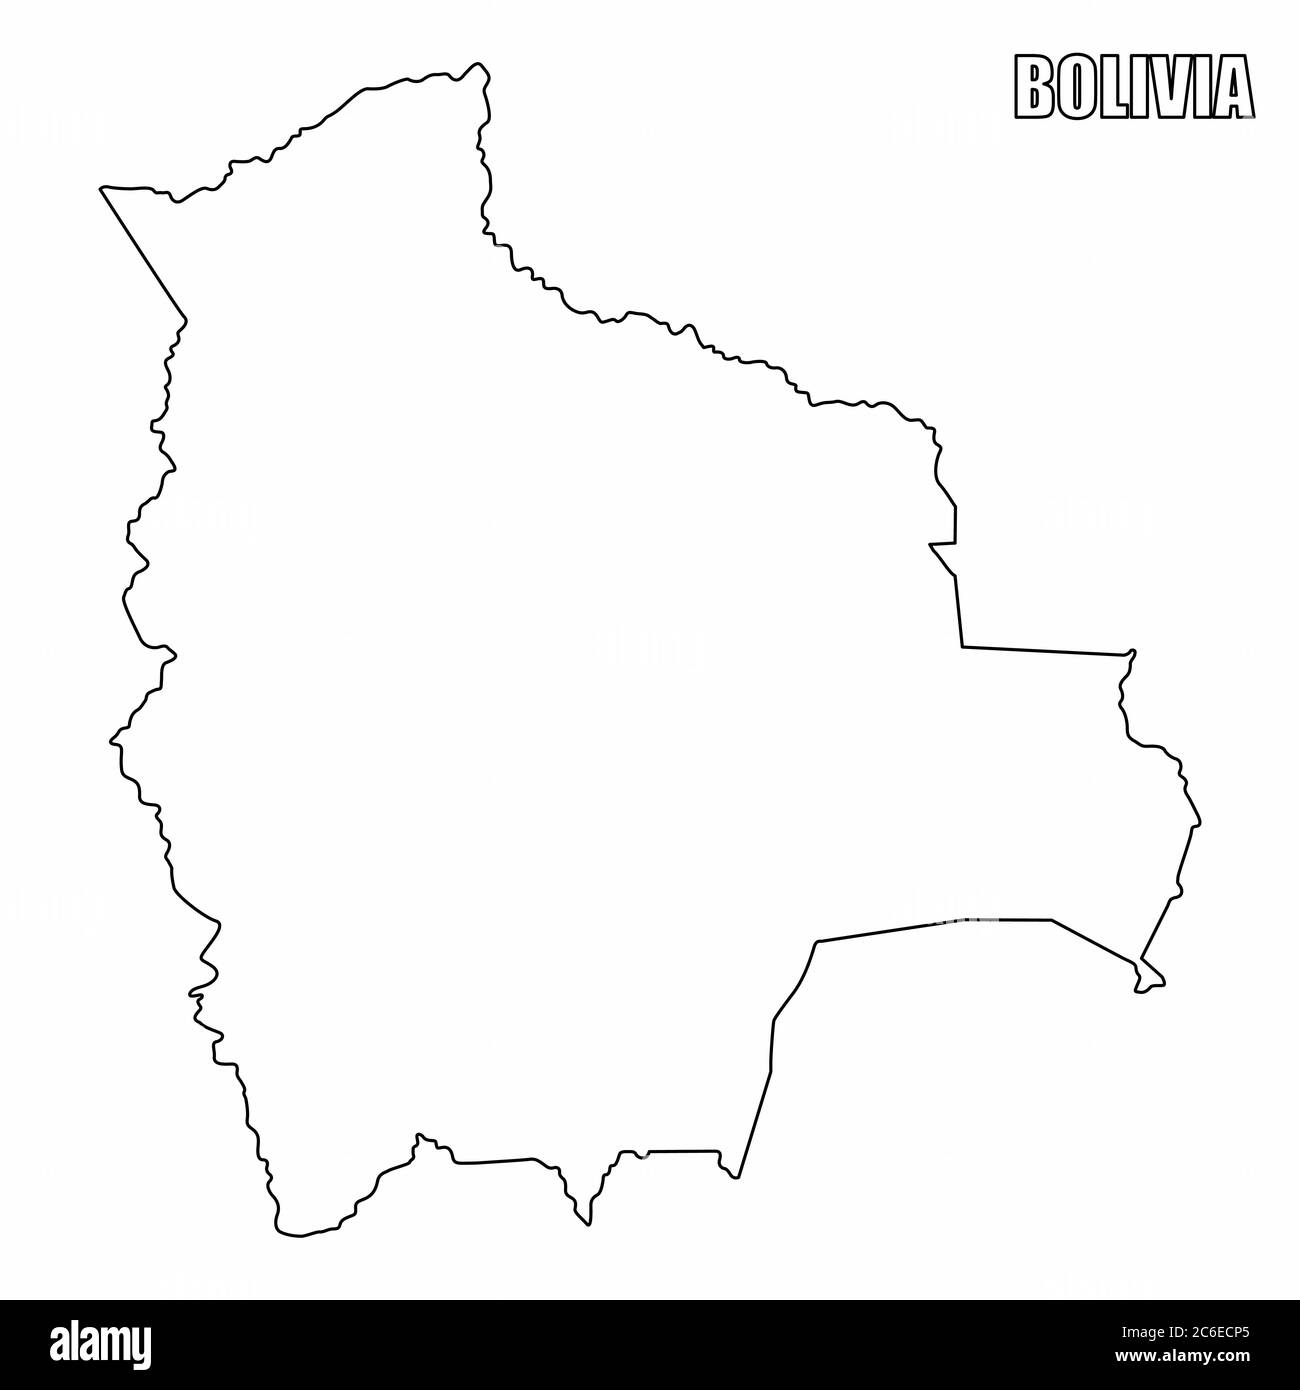 Picture of: Bolivia Blank Map High Resolution Stock Photography And Images Alamy